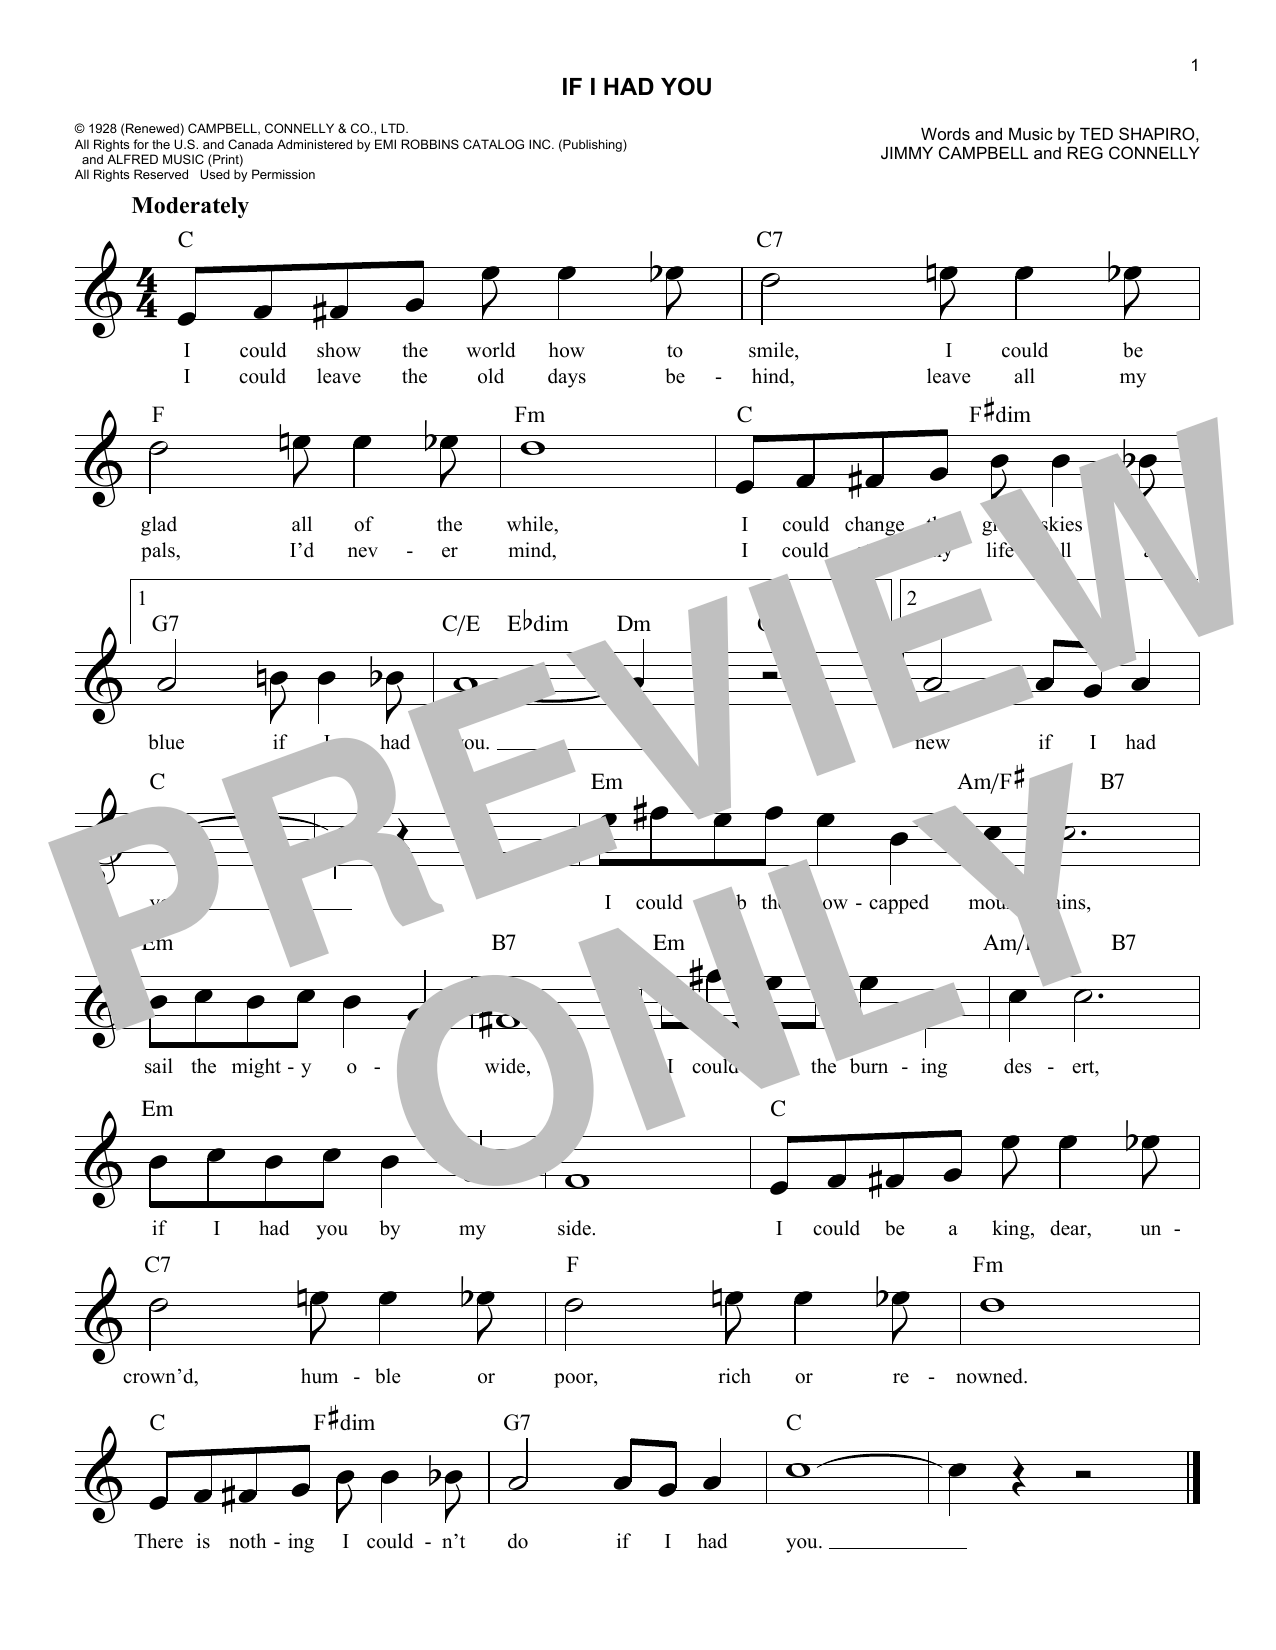 Frank Sinatra If I Had You sheet music notes and chords. Download Printable PDF.